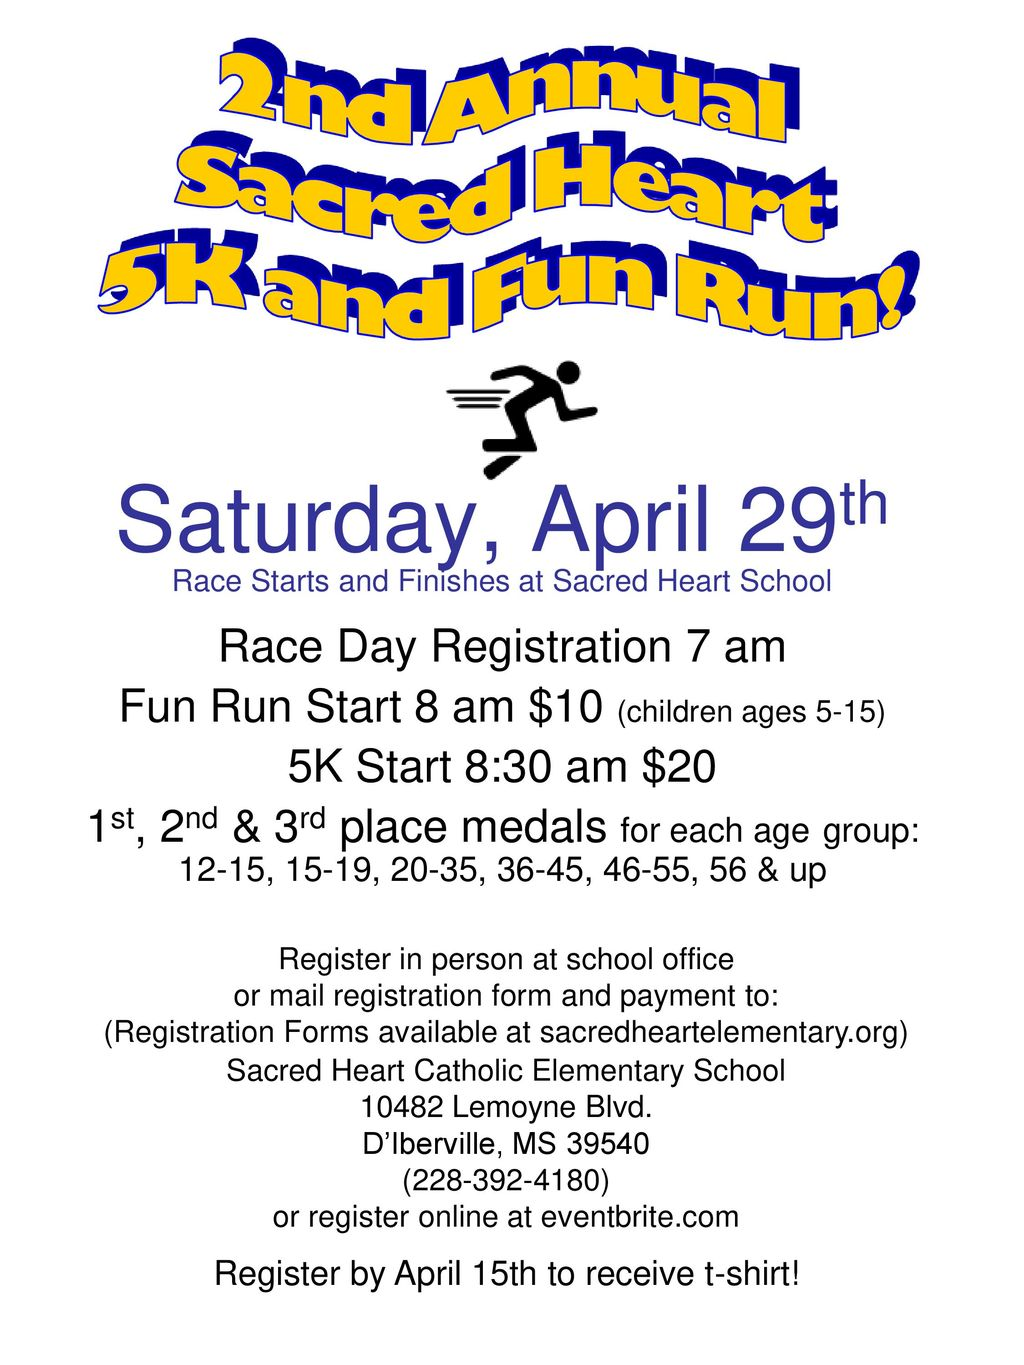 Saturday, April 29th 2nd Annual Sacred Heart 5K and Fun Run